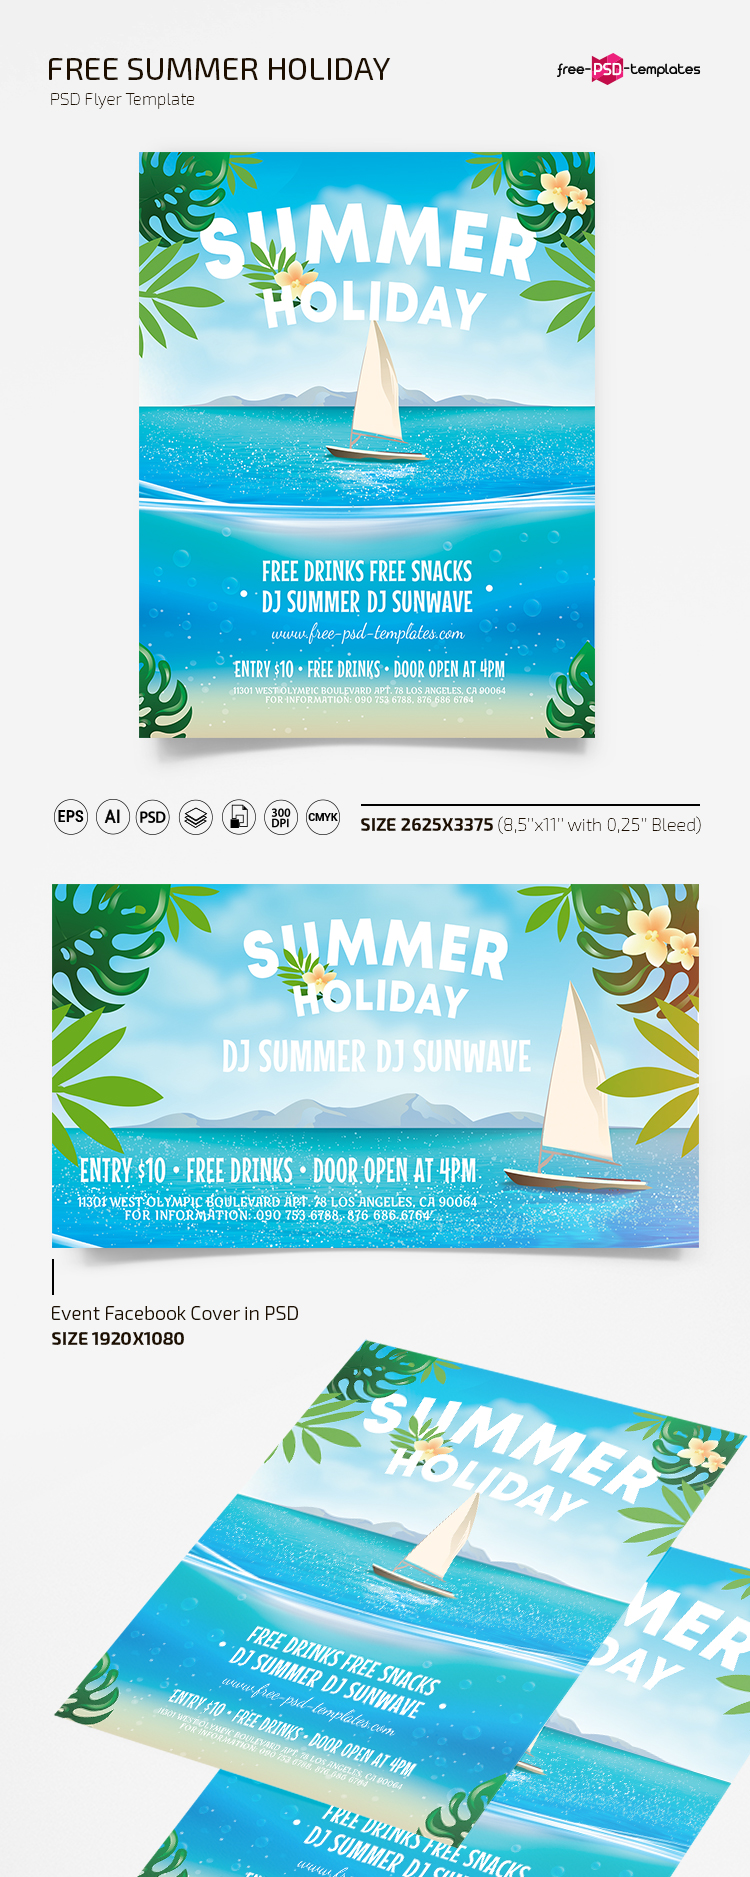 Free Summer Holiday Flyer Template in PSD + AI